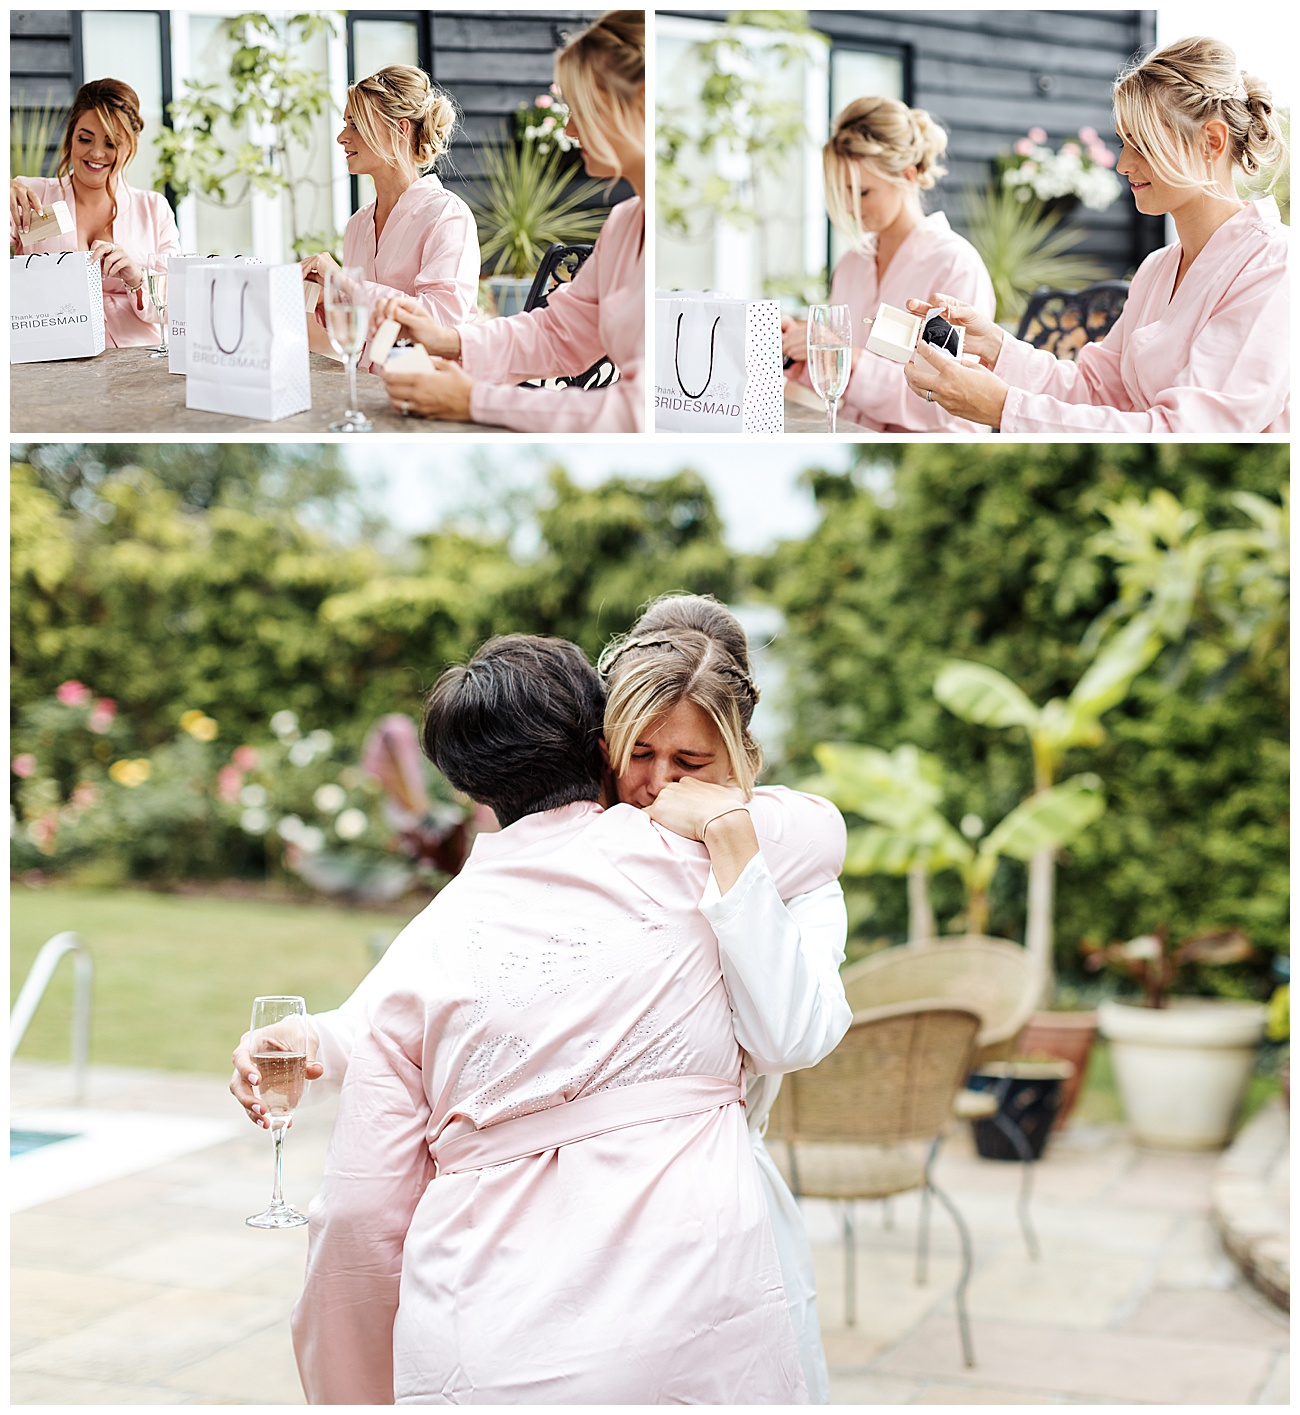 An emotional bride hugs her mum as the gifts are given to the bridesmaids